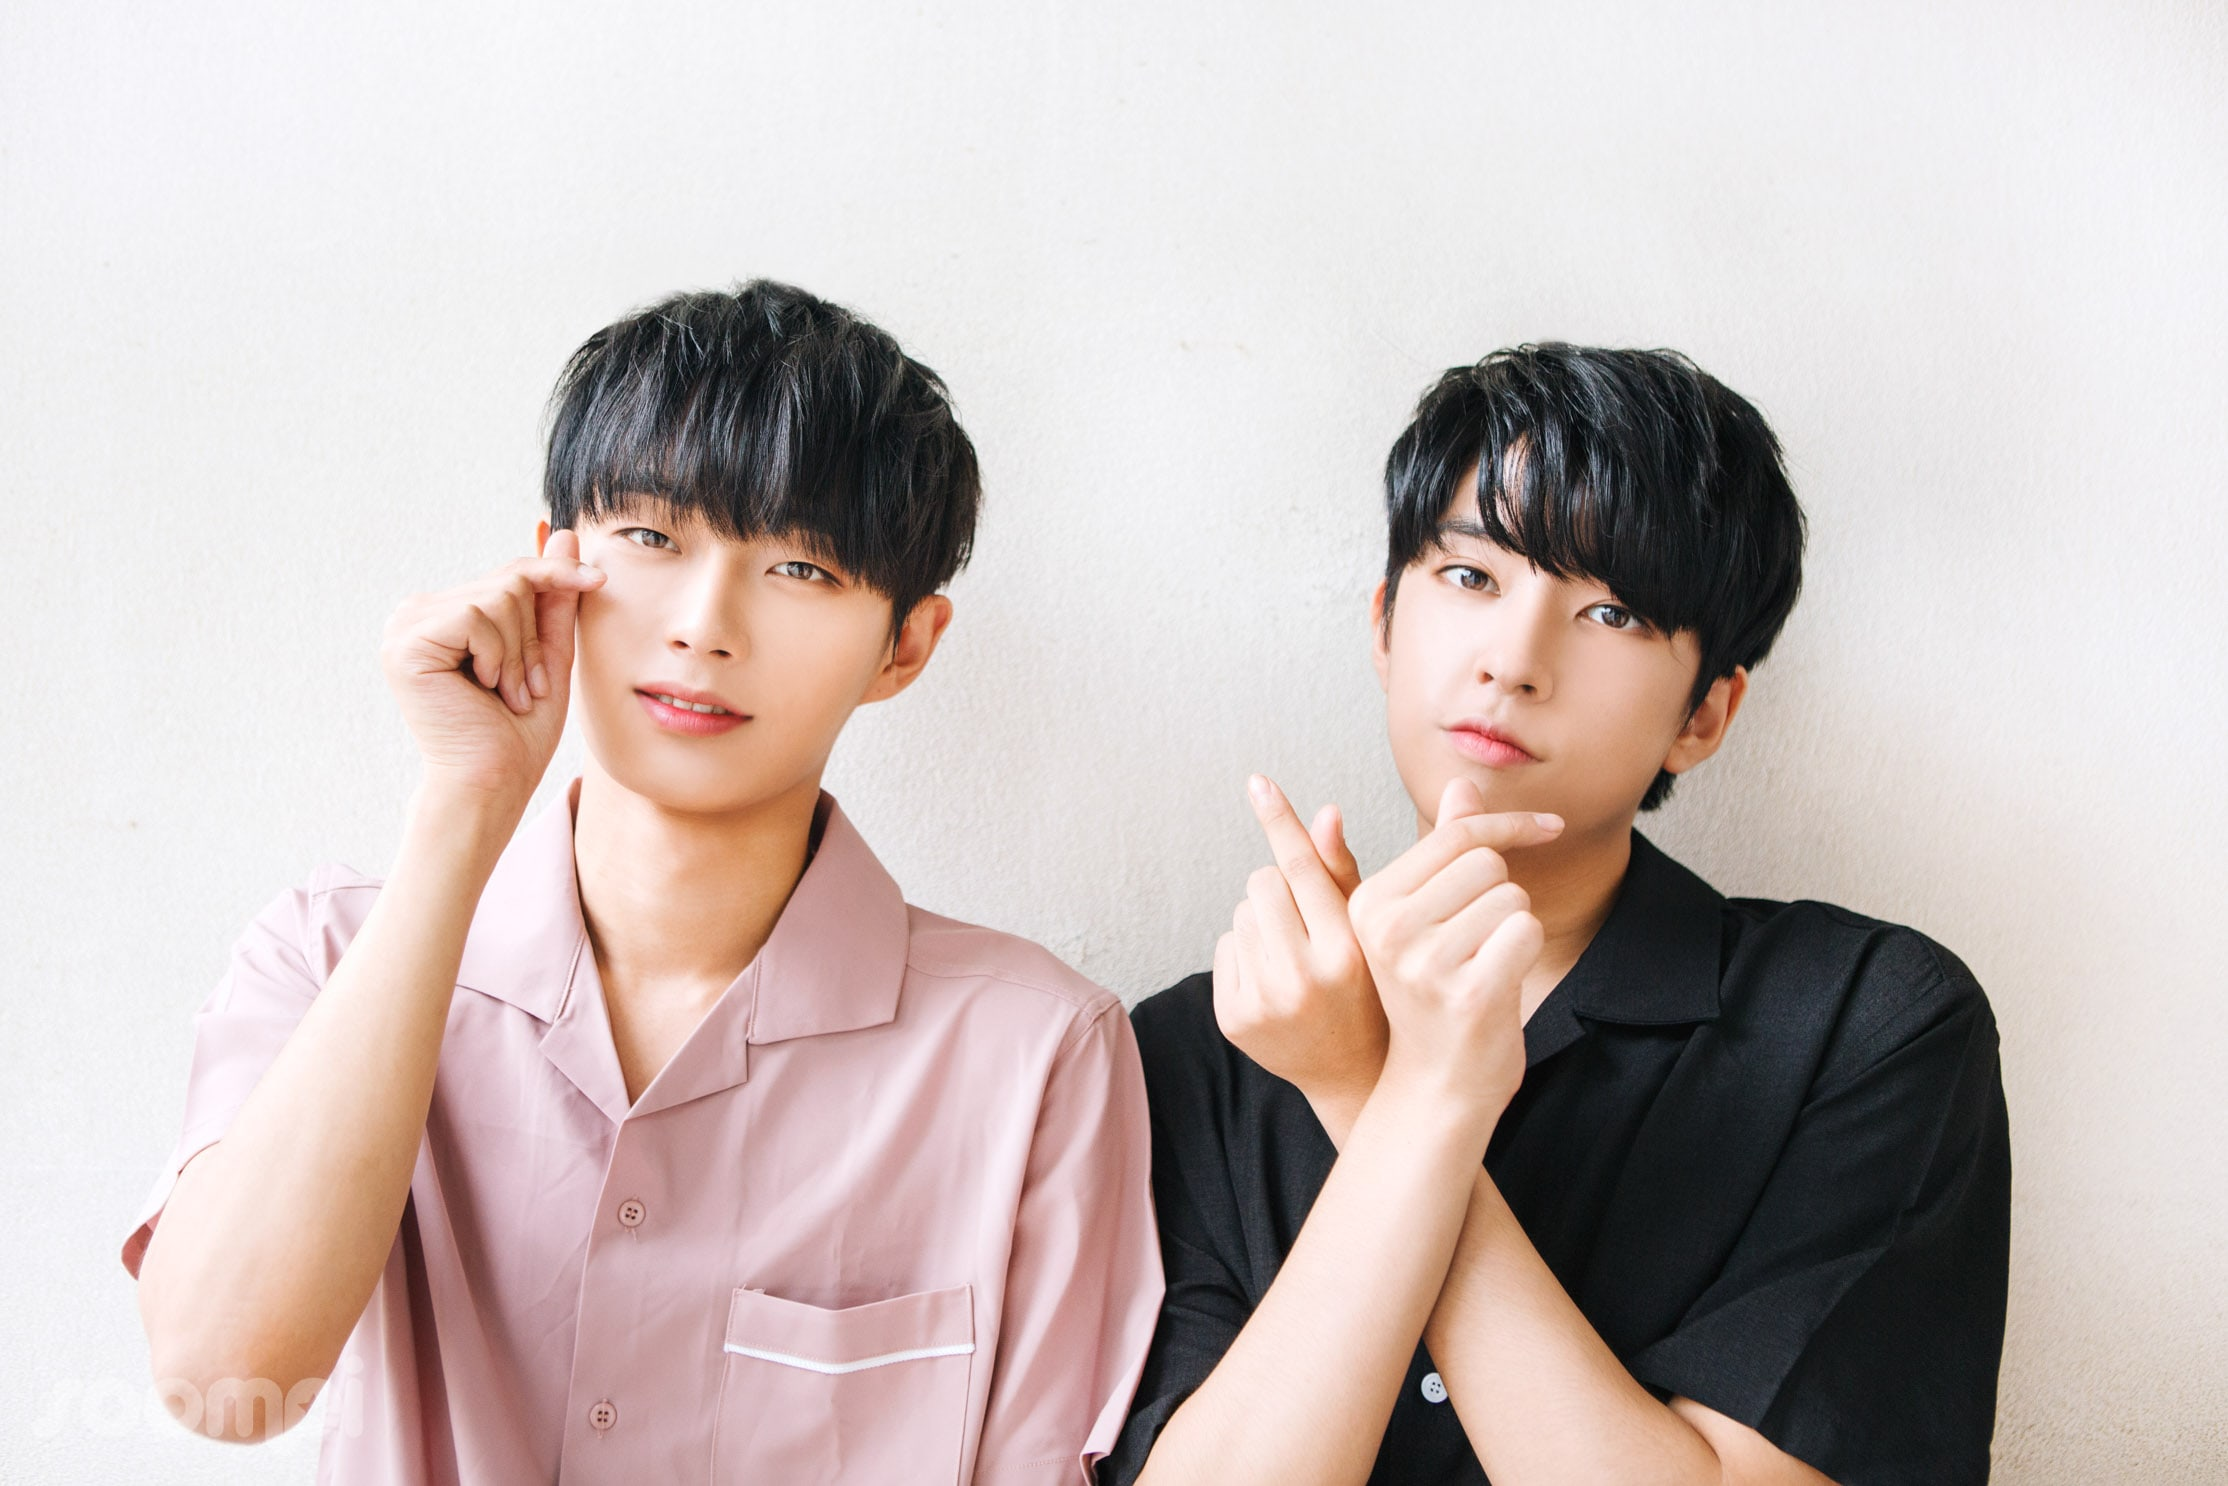 Exclusive: LongguoShihyun Share Their Self-Written Profiles, Revealing Their Ambitions, Role Models,